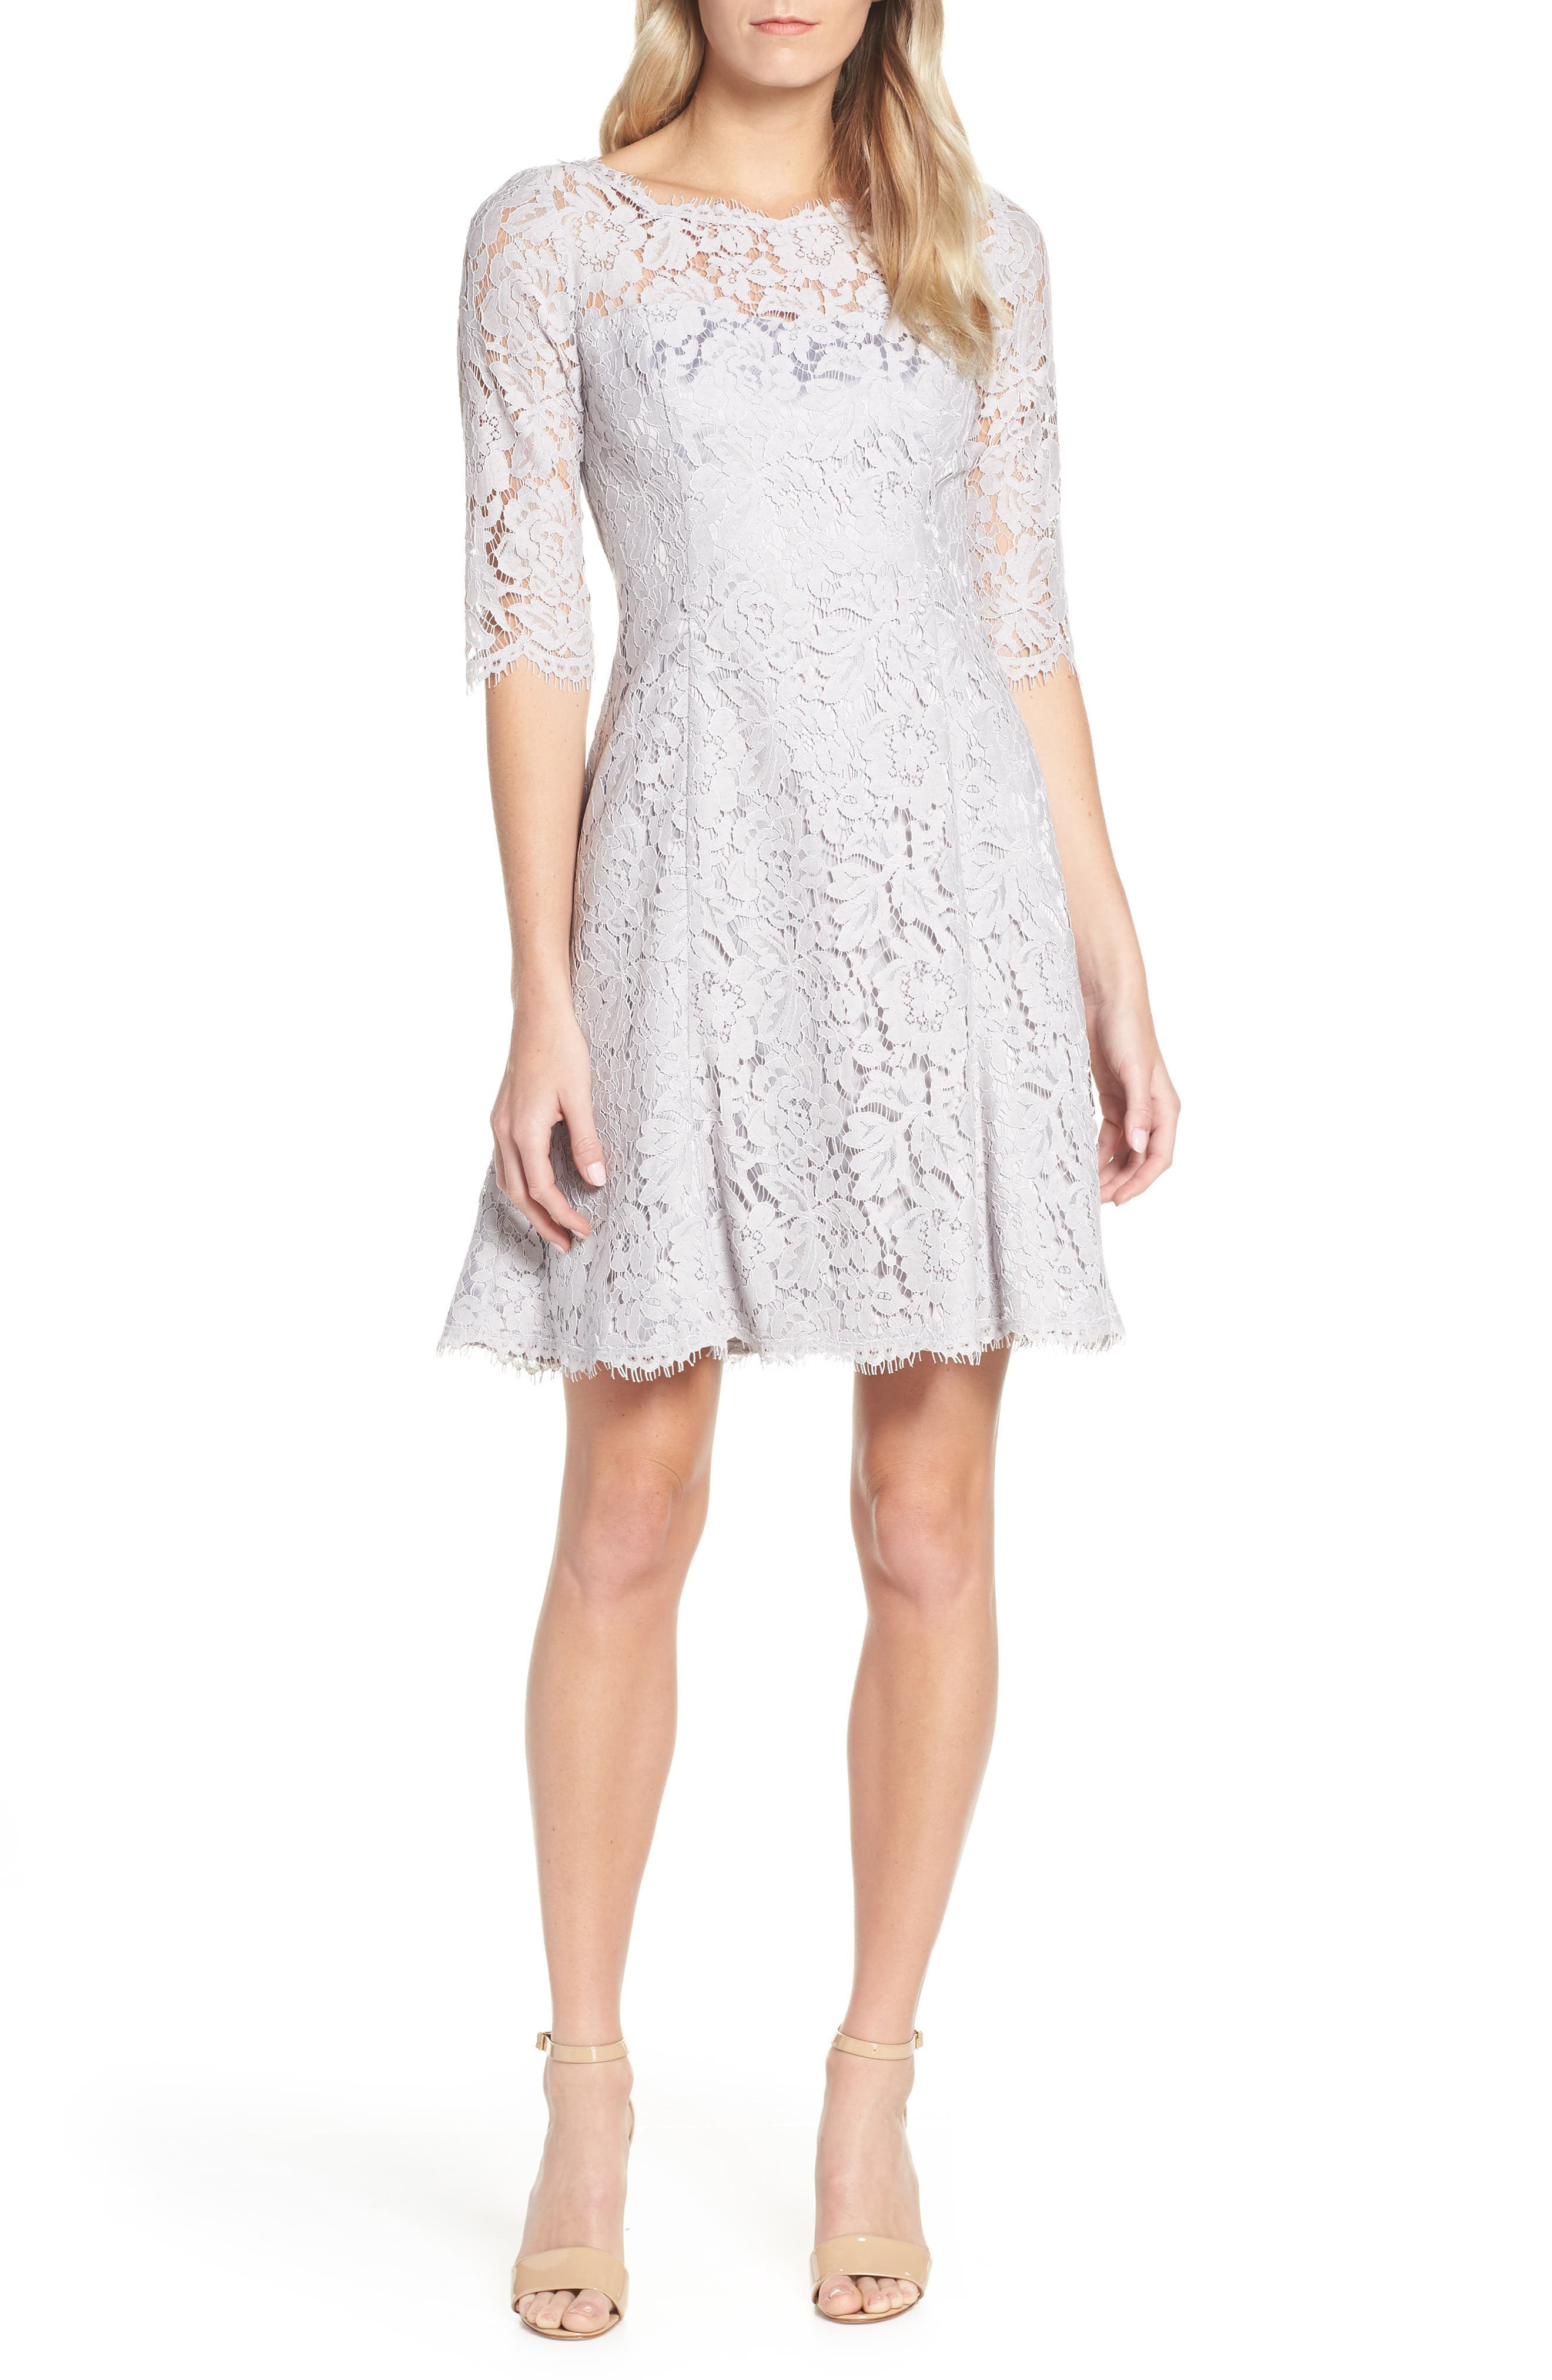 Eliza J Lace Fit & Flare Cocktail Dress, Grey